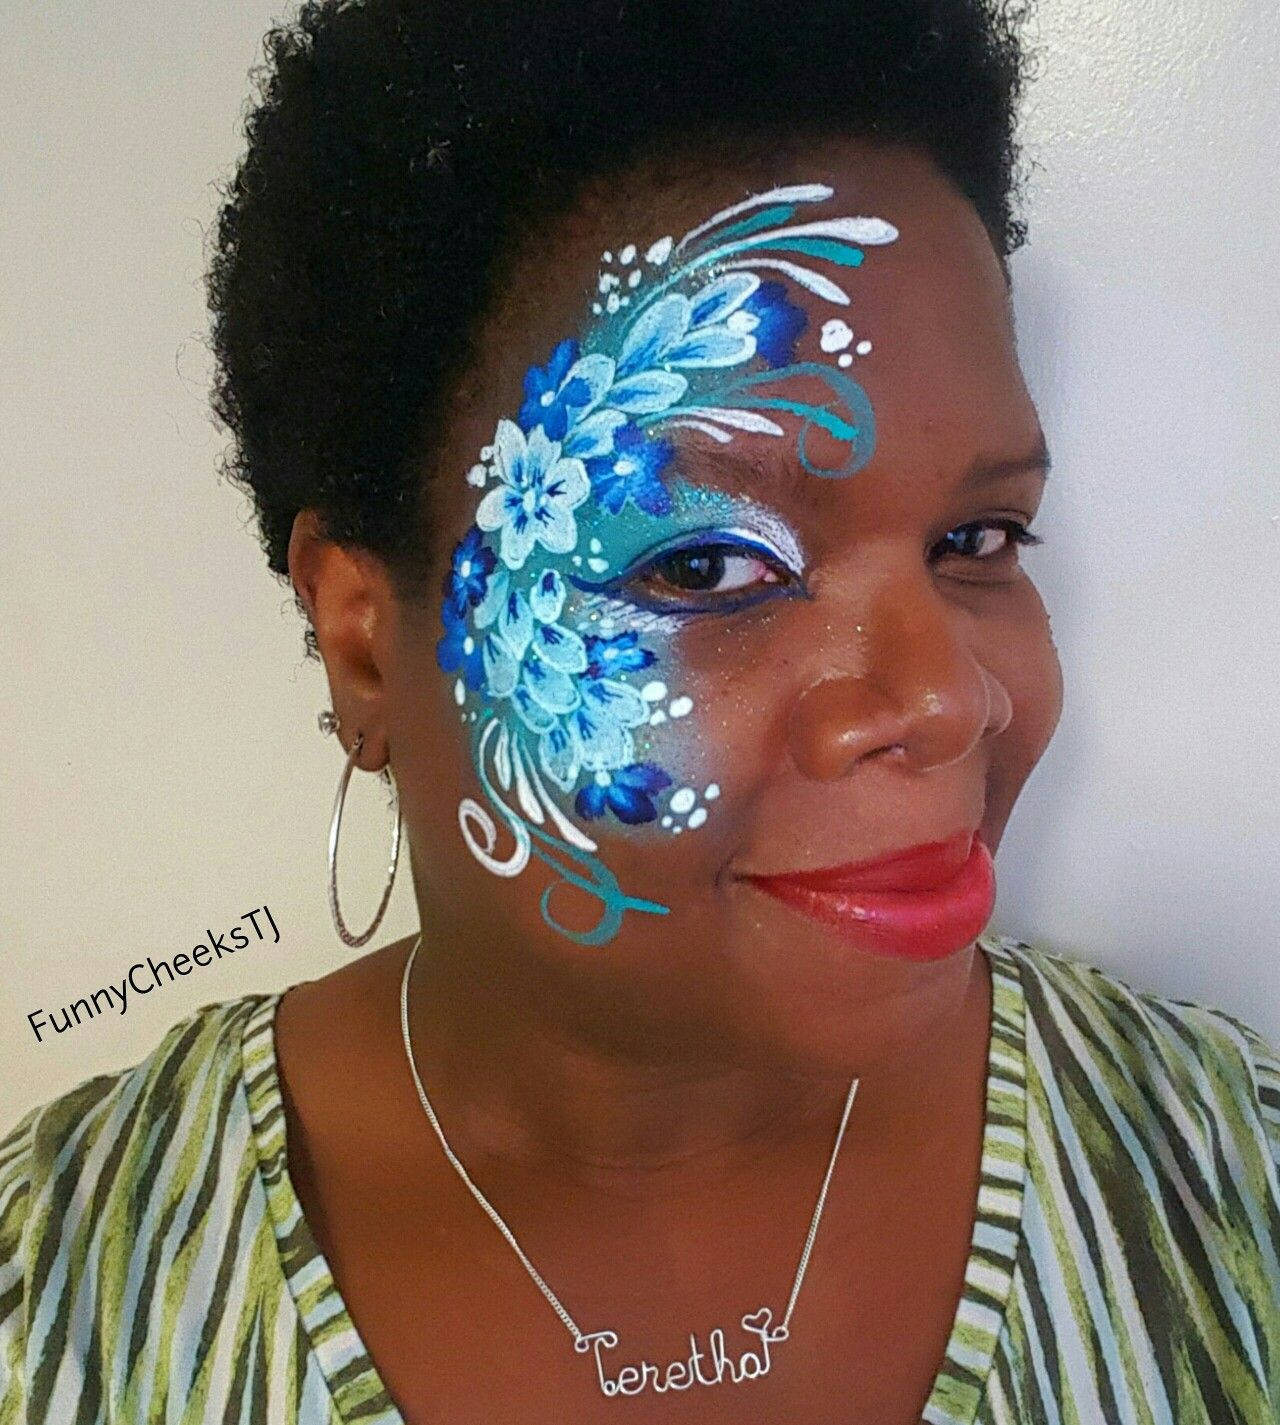 Blue And White Flower Eye Design Face Painting By Funnycheekstj Of Funny Cheeks Dallas Face Painting Face Painting Face Painting Flowers Face Painting Designs